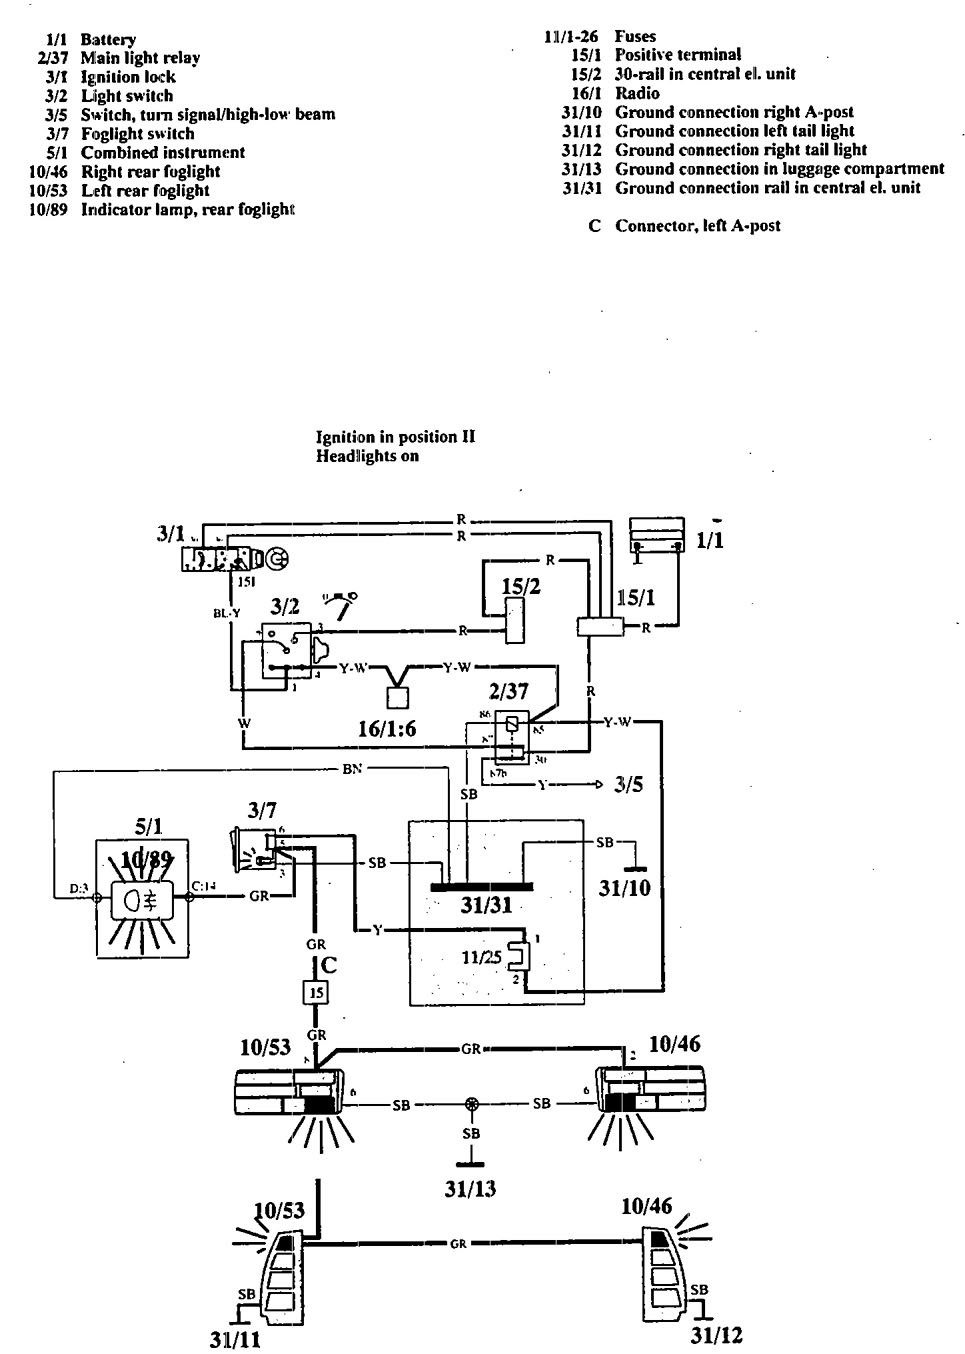 Volvo 740 (1992) - wiring diagrams - fog lamps - Carknowledge.info | Volvo Fog Lights Wiring Diagram |  | Carknowledge.info